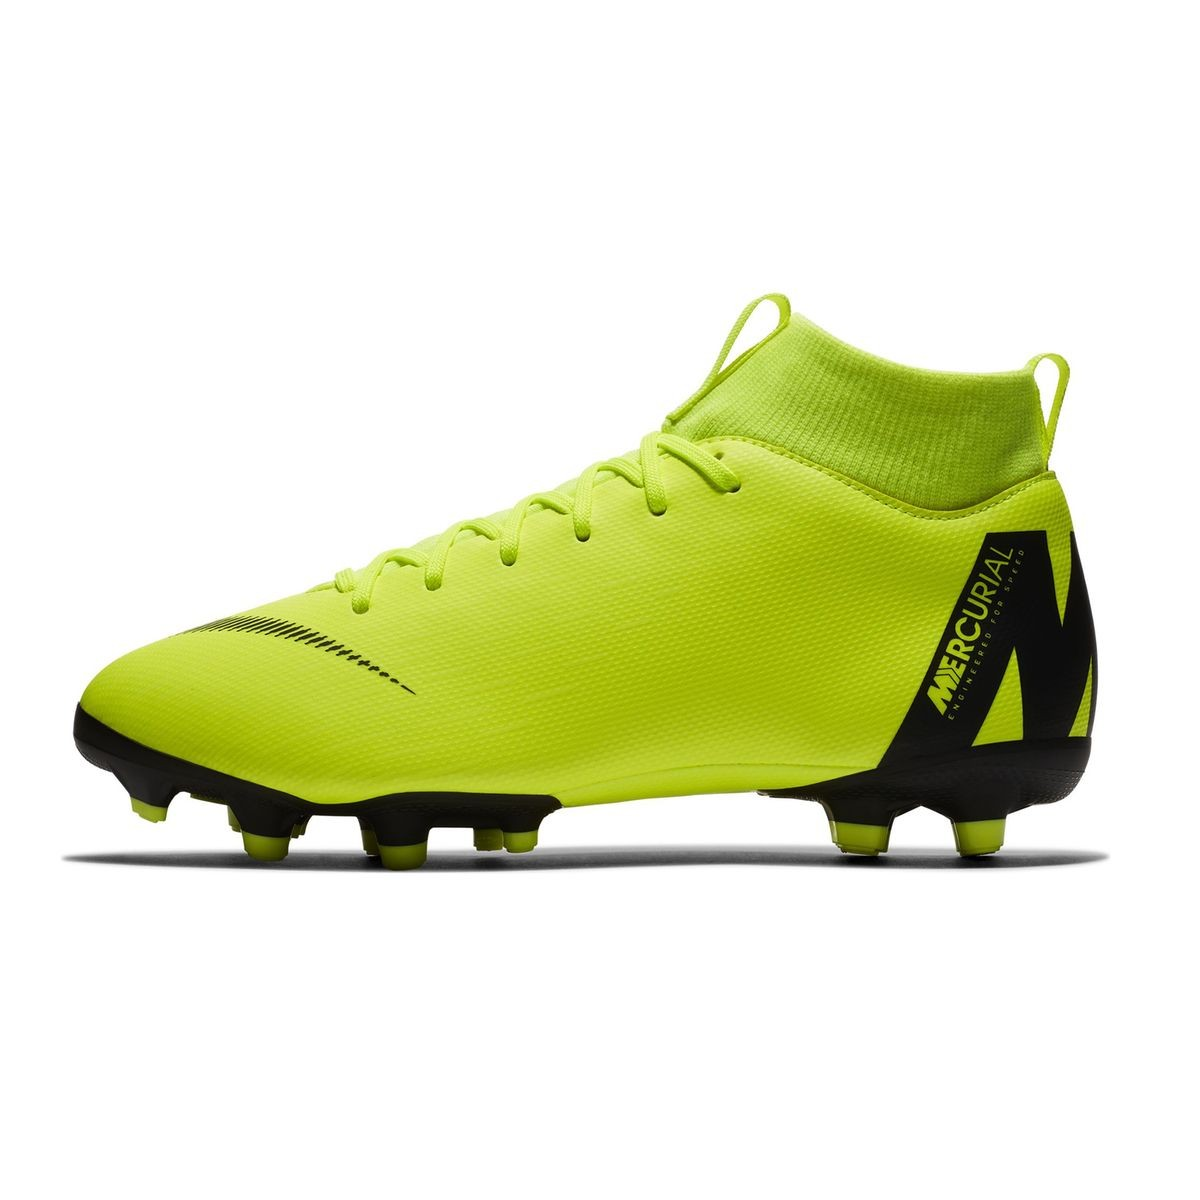 Chaussures Football Nike Mercurial Superfly Vi Academy Df Mg